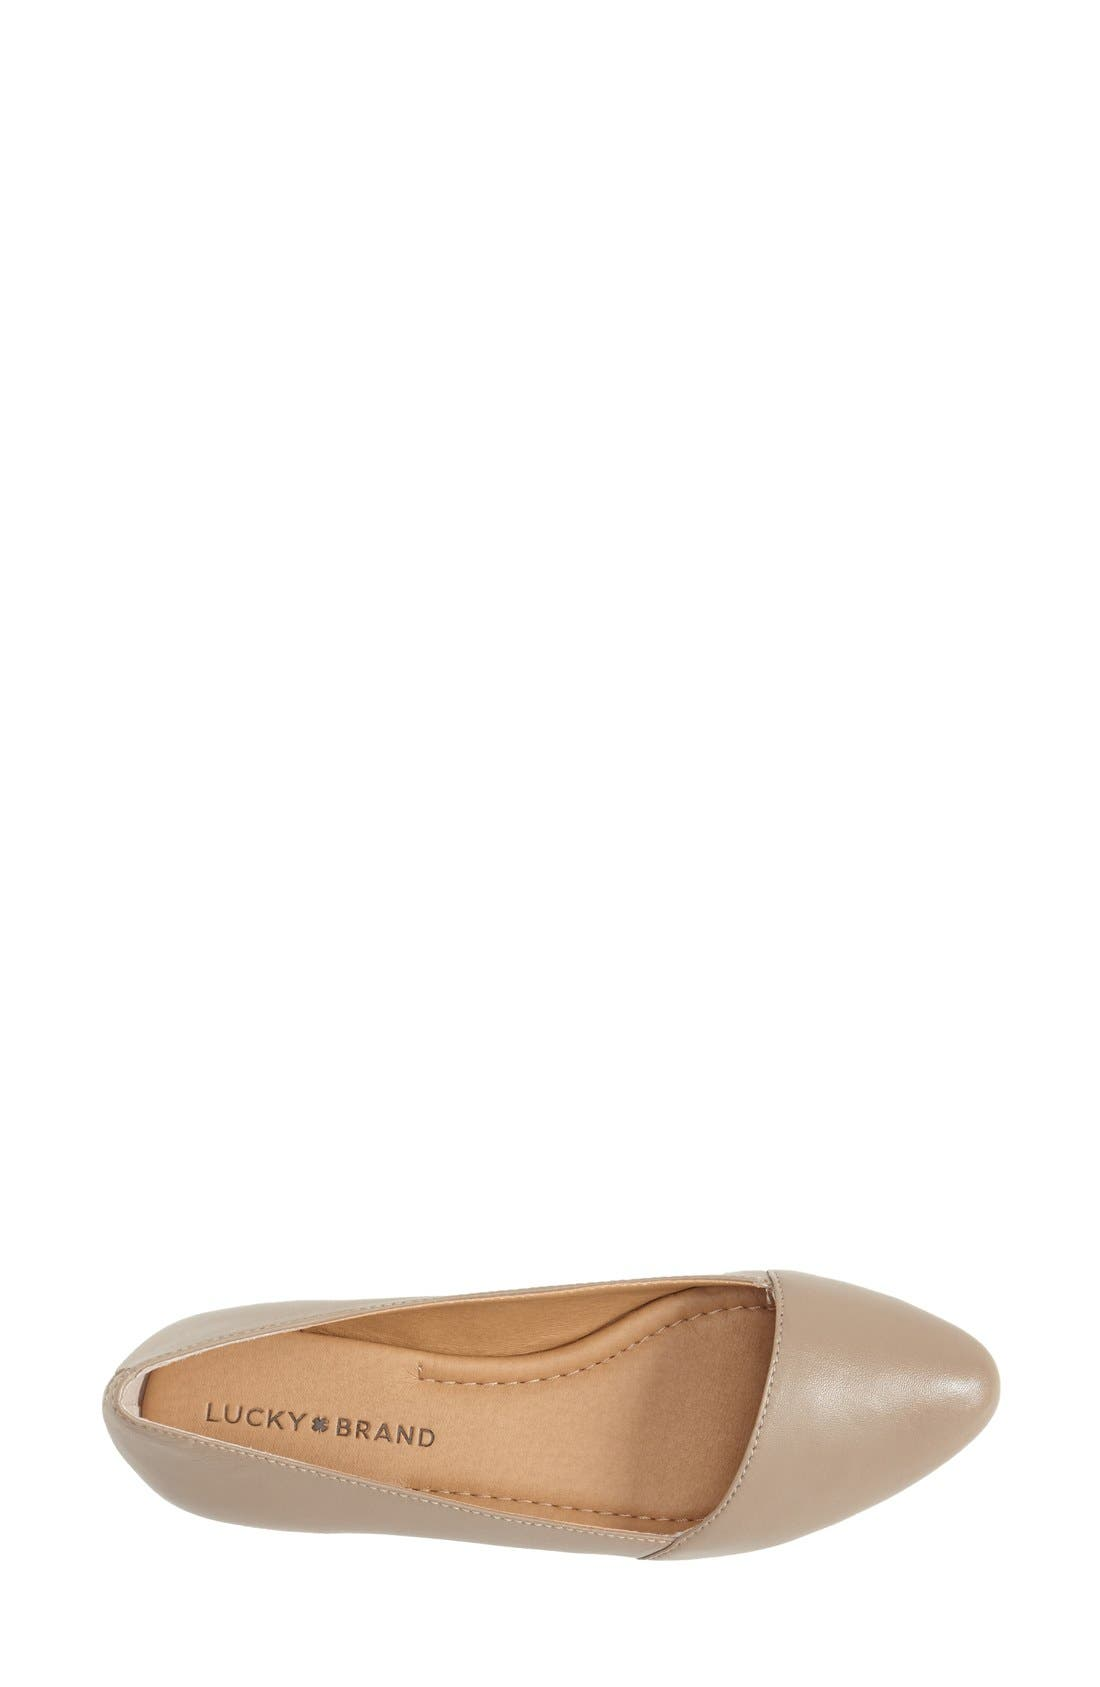 Alternate Image 3  - Lucky Brand 'Archh' Flat (Women)